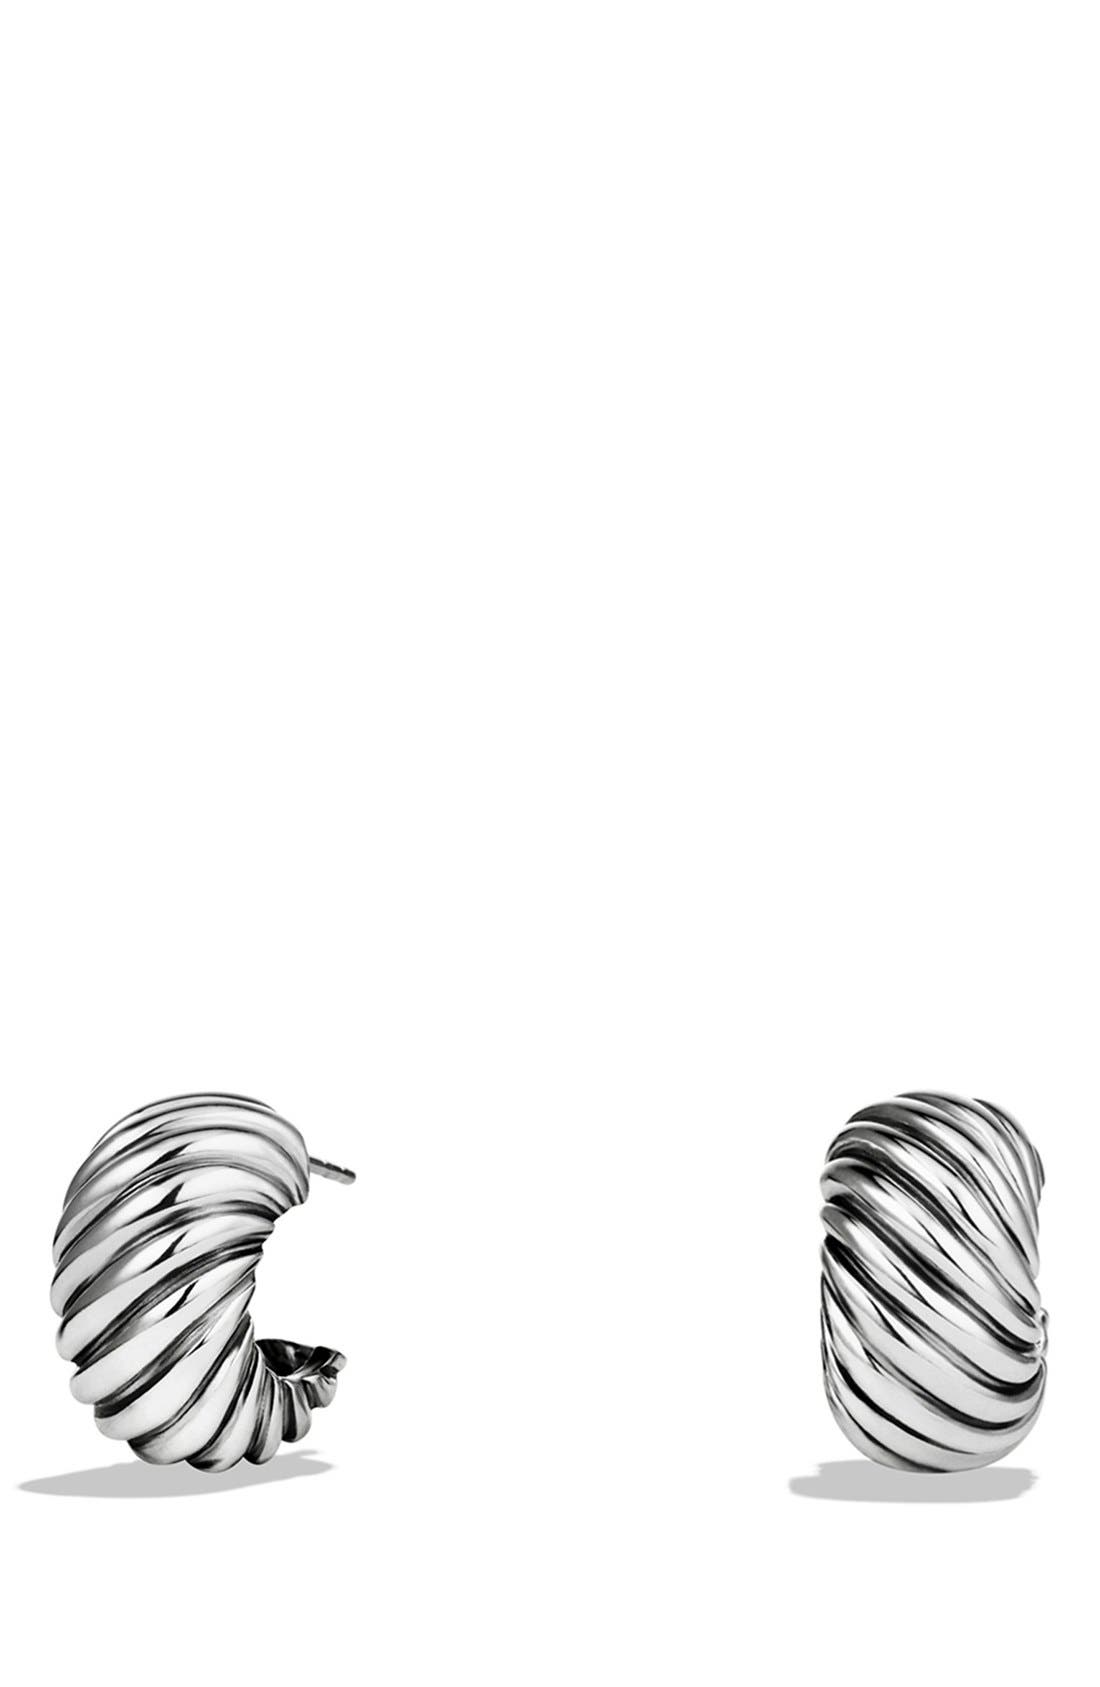 Main Image - David Yurman 'Cable Classics' Hoop Earrings